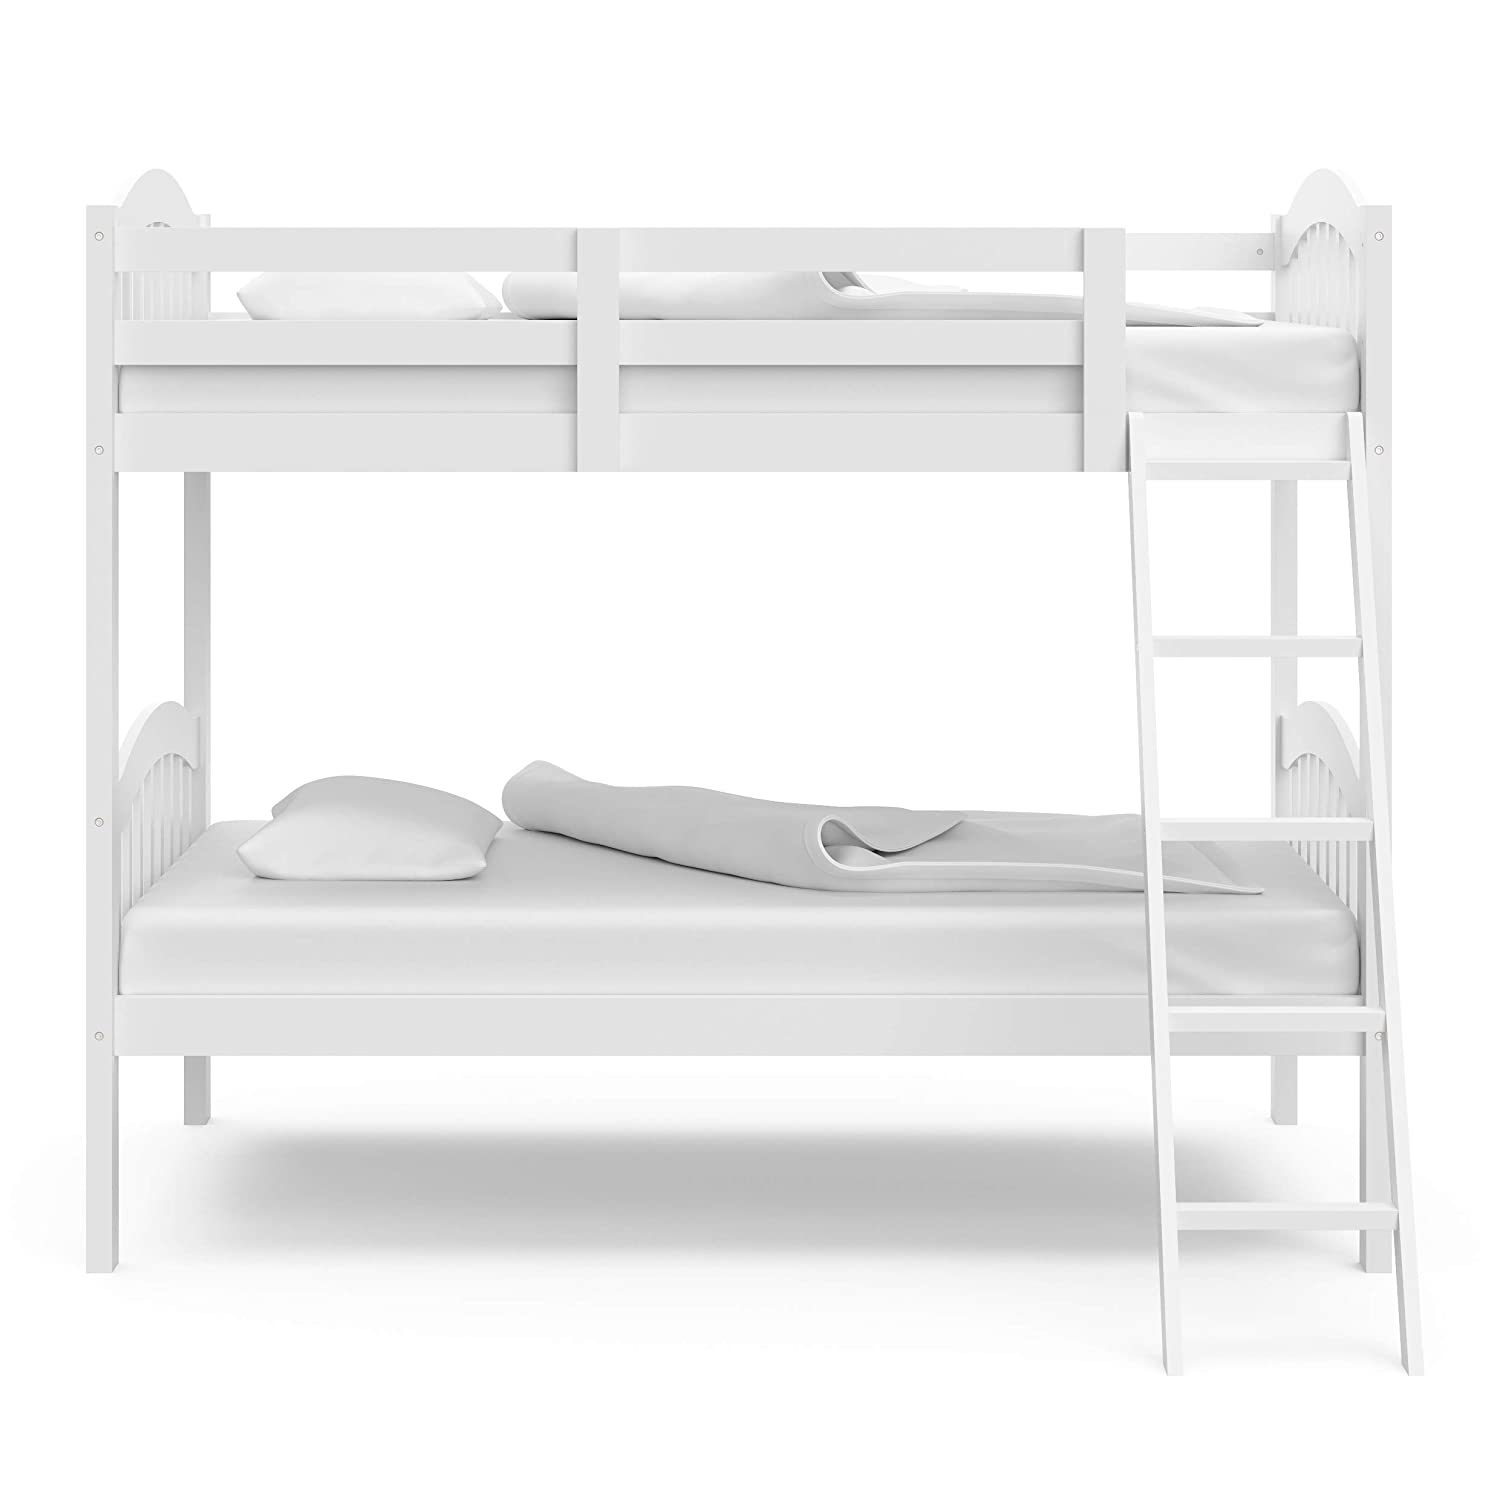 Picture of: China Solid Wood Bunk Bed With Trundle Bed Pine Wood Finished China Bunk Bed Wooden Bed